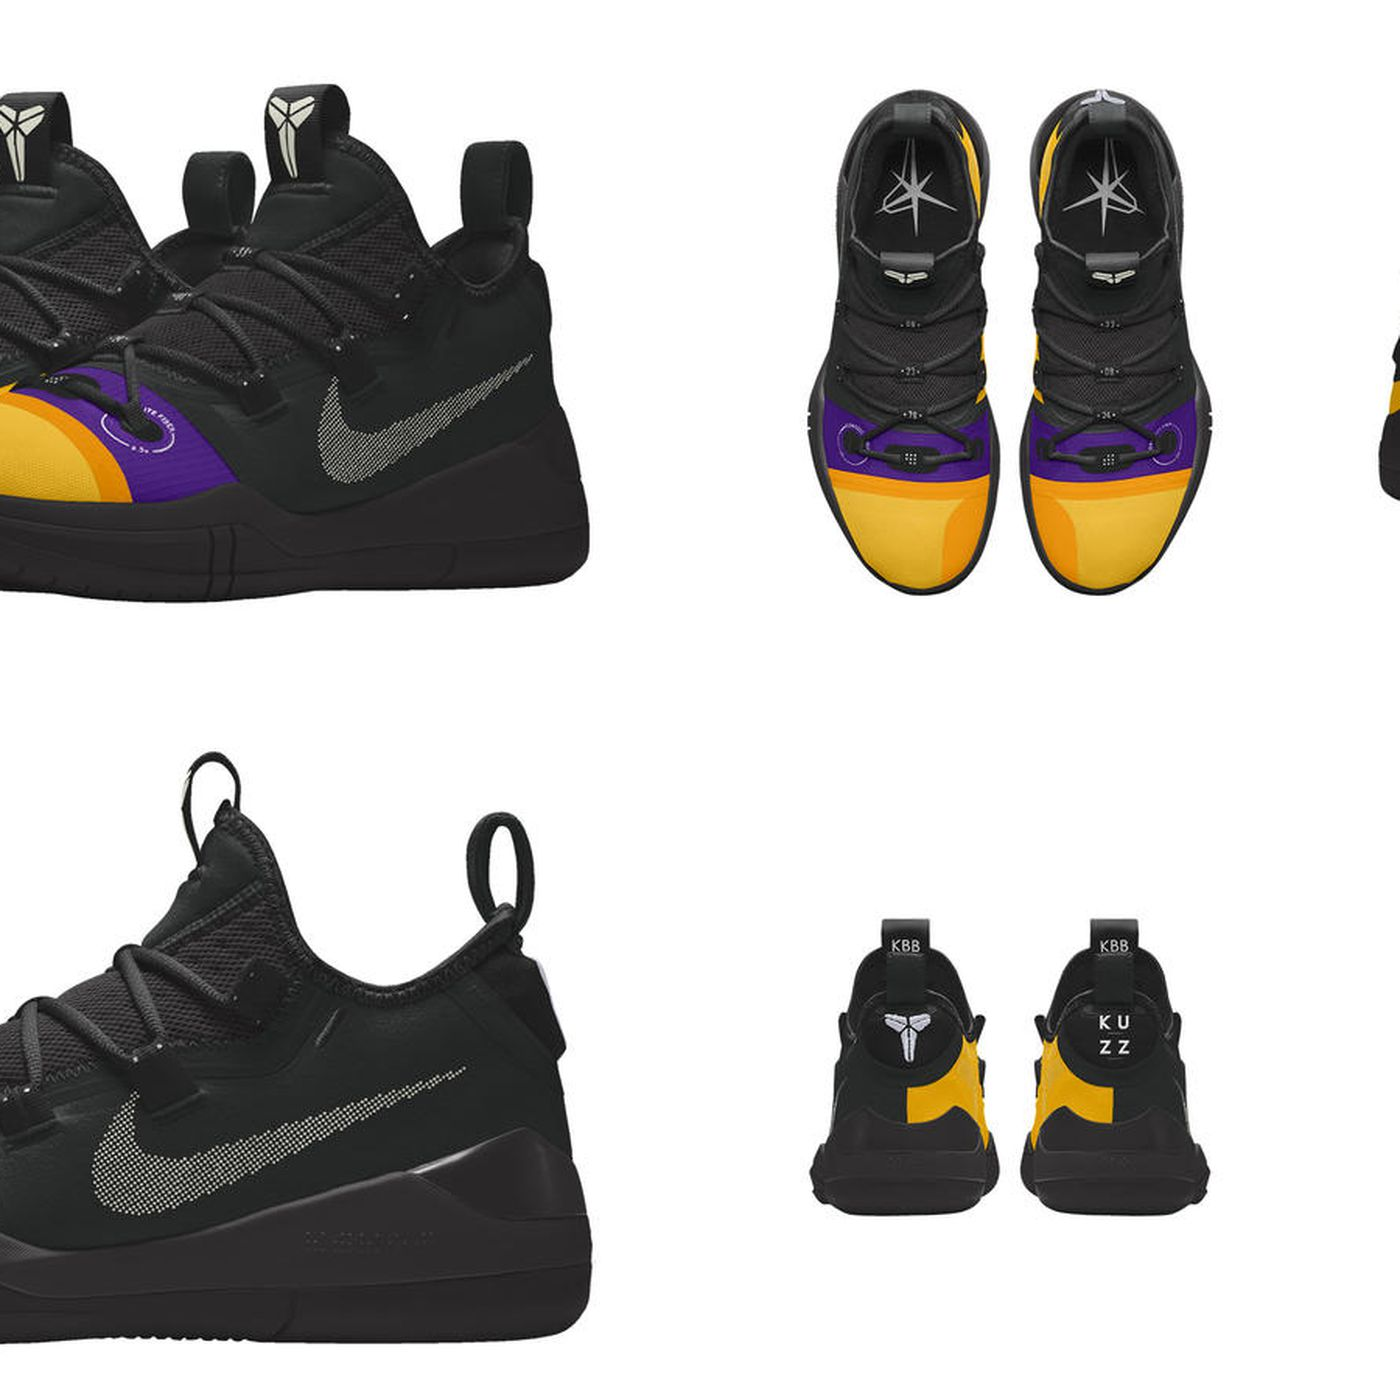 lowest price eb695 2e642 Lakers News  Kyle Kuzma to wear customized Nike Kobe AD for NBA opening  week - Silver Screen and Roll